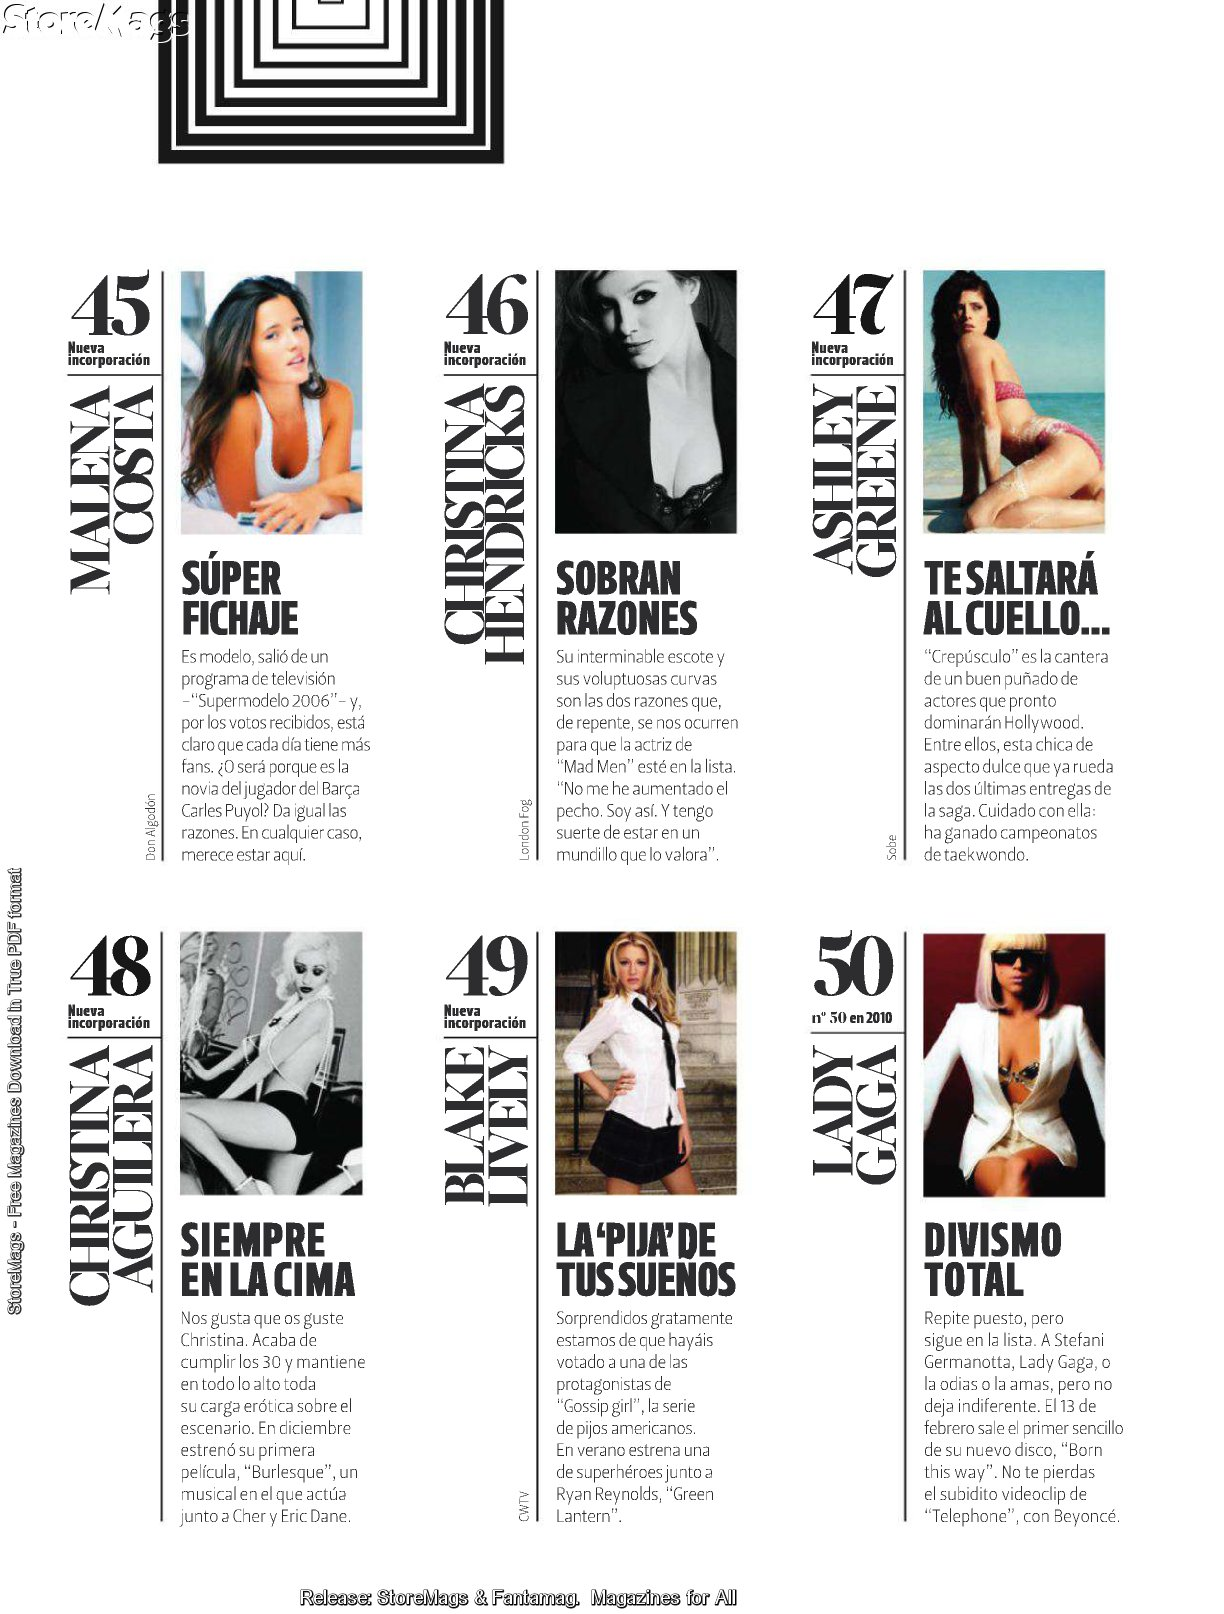 55542_septimiu29_TOP50SexiestWomenOfTheWorld_DTSpain_Feb2011_122_61lo.jpg